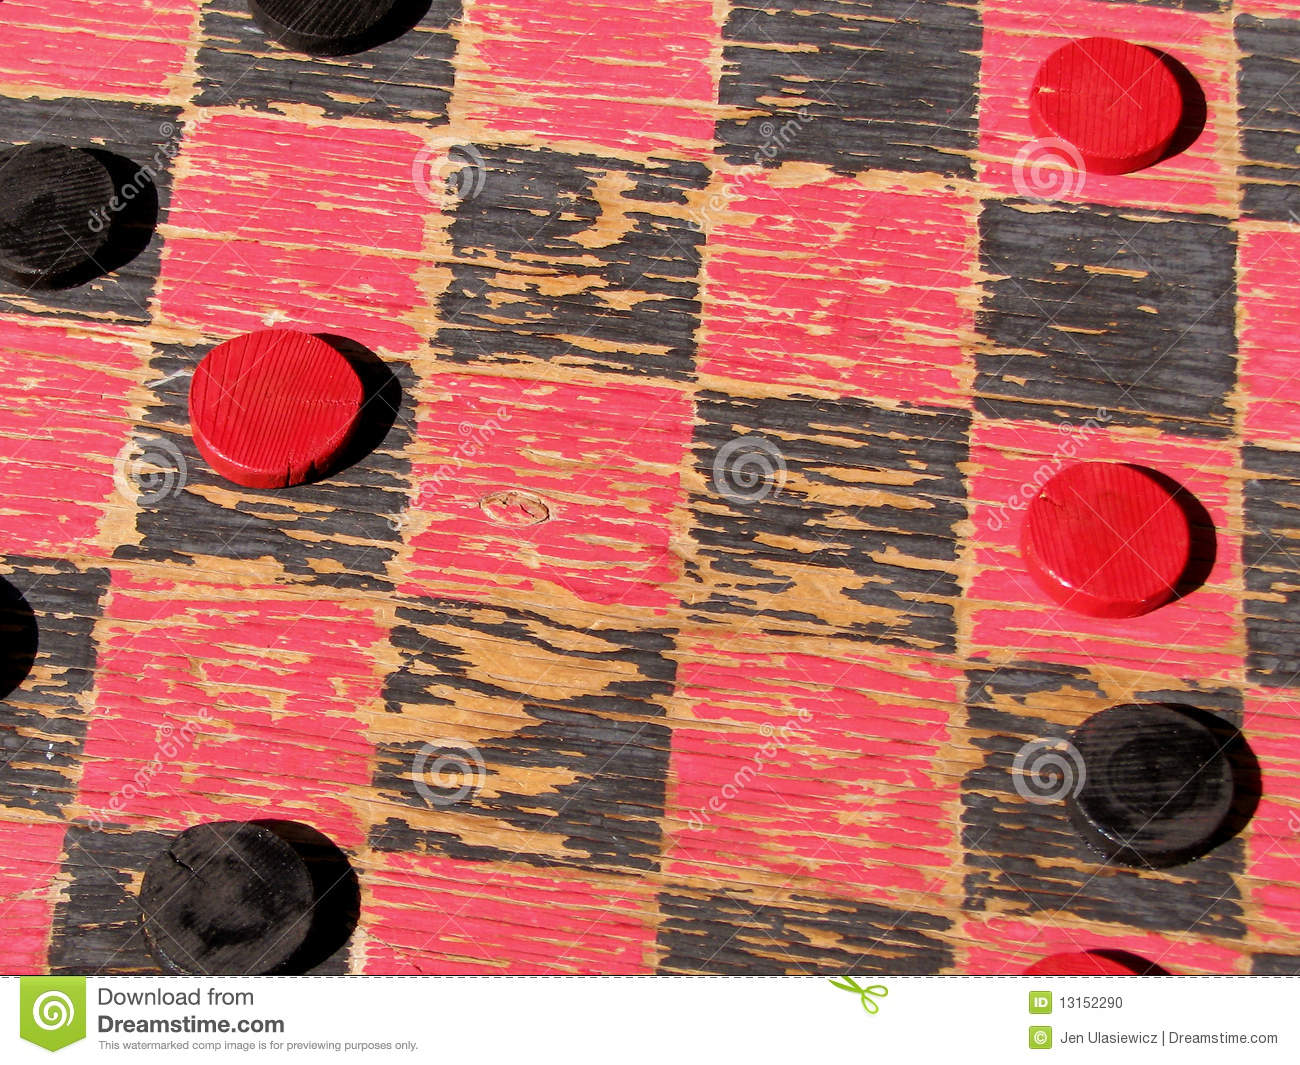 people playing checkers